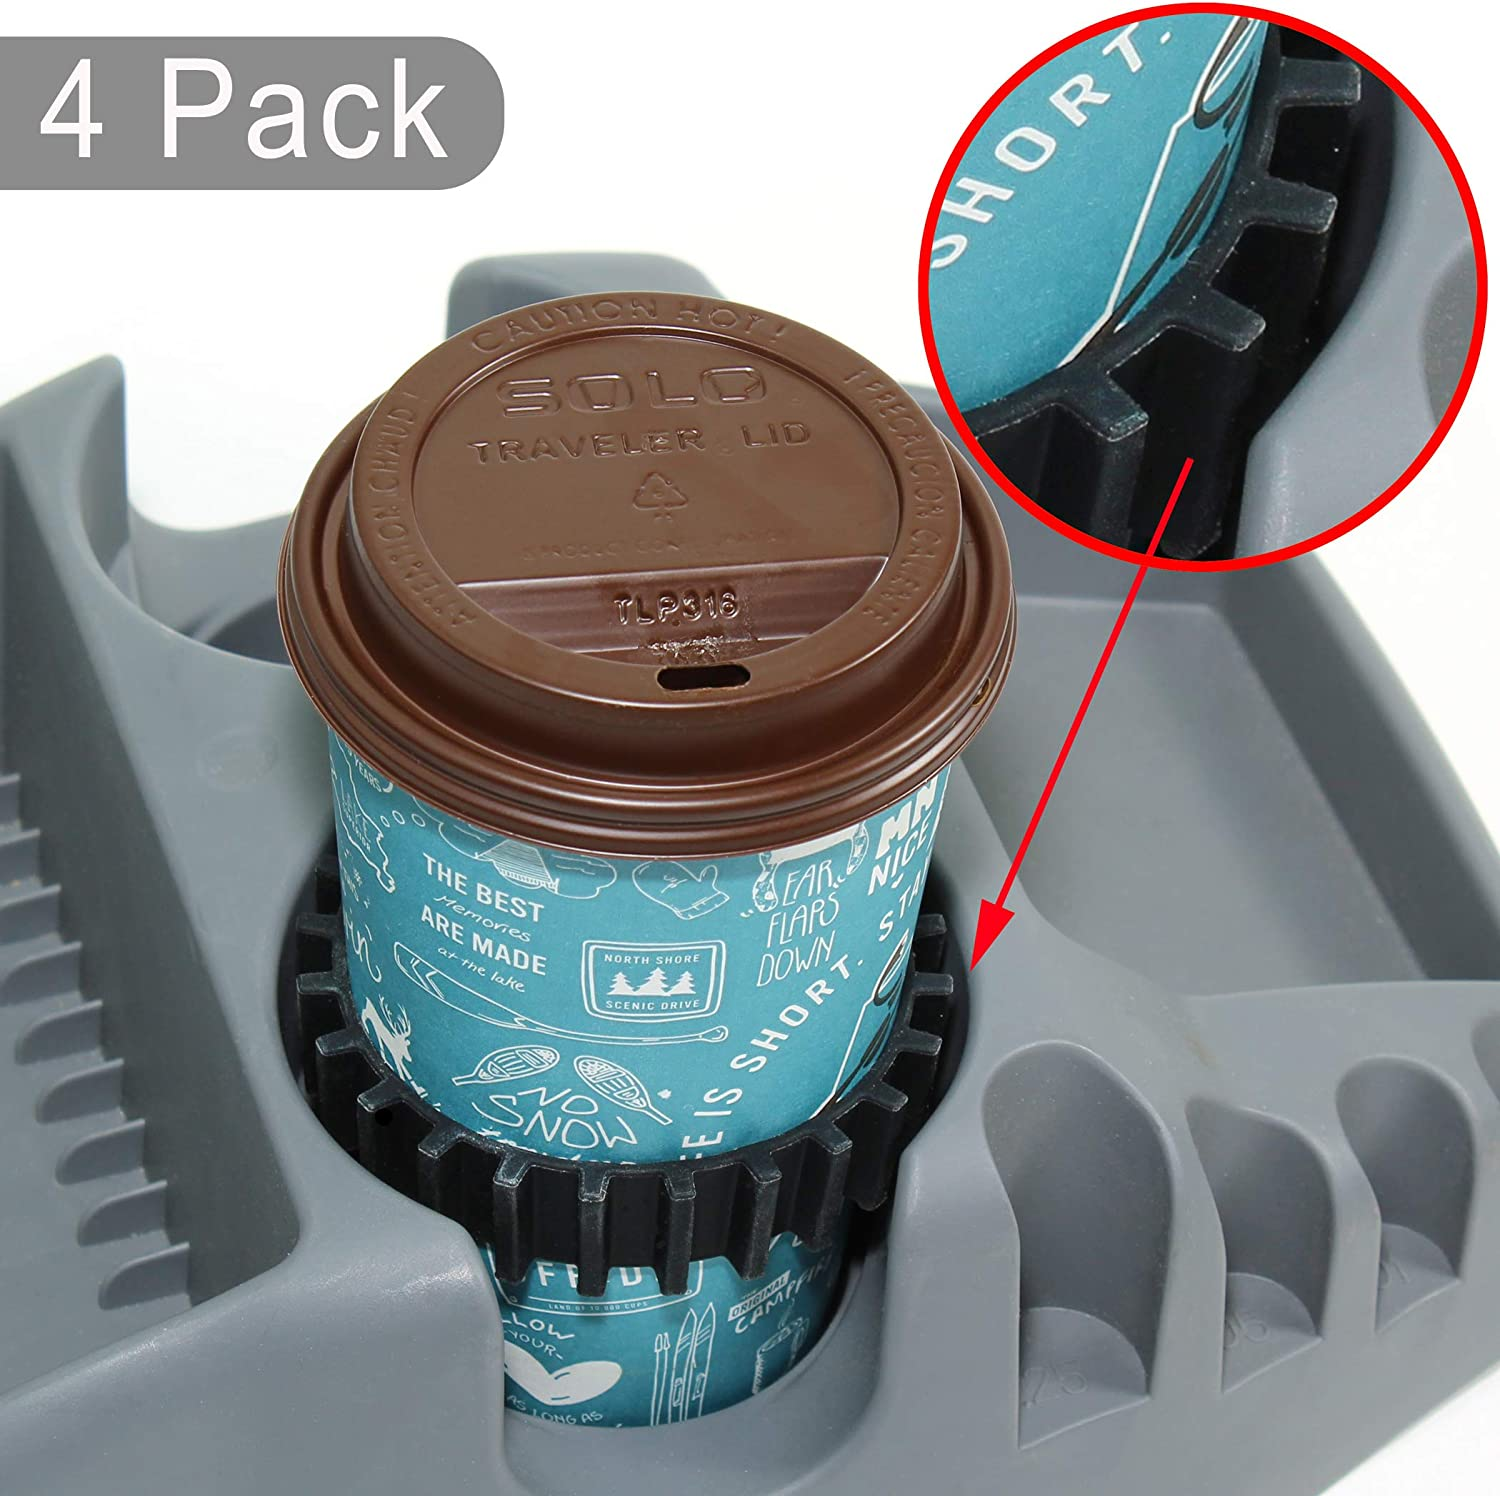 Gadjit Beverage Bands Car Cup Holder Adapter - Stop On-The-Go Drinks from Wobbling in Your Cup Holder (4 Pack) | Keeps 8-28 oz Coffee Cups, 12-16 oz Soda Cans, 20 oz Water Bottles, Mugs from Tipping